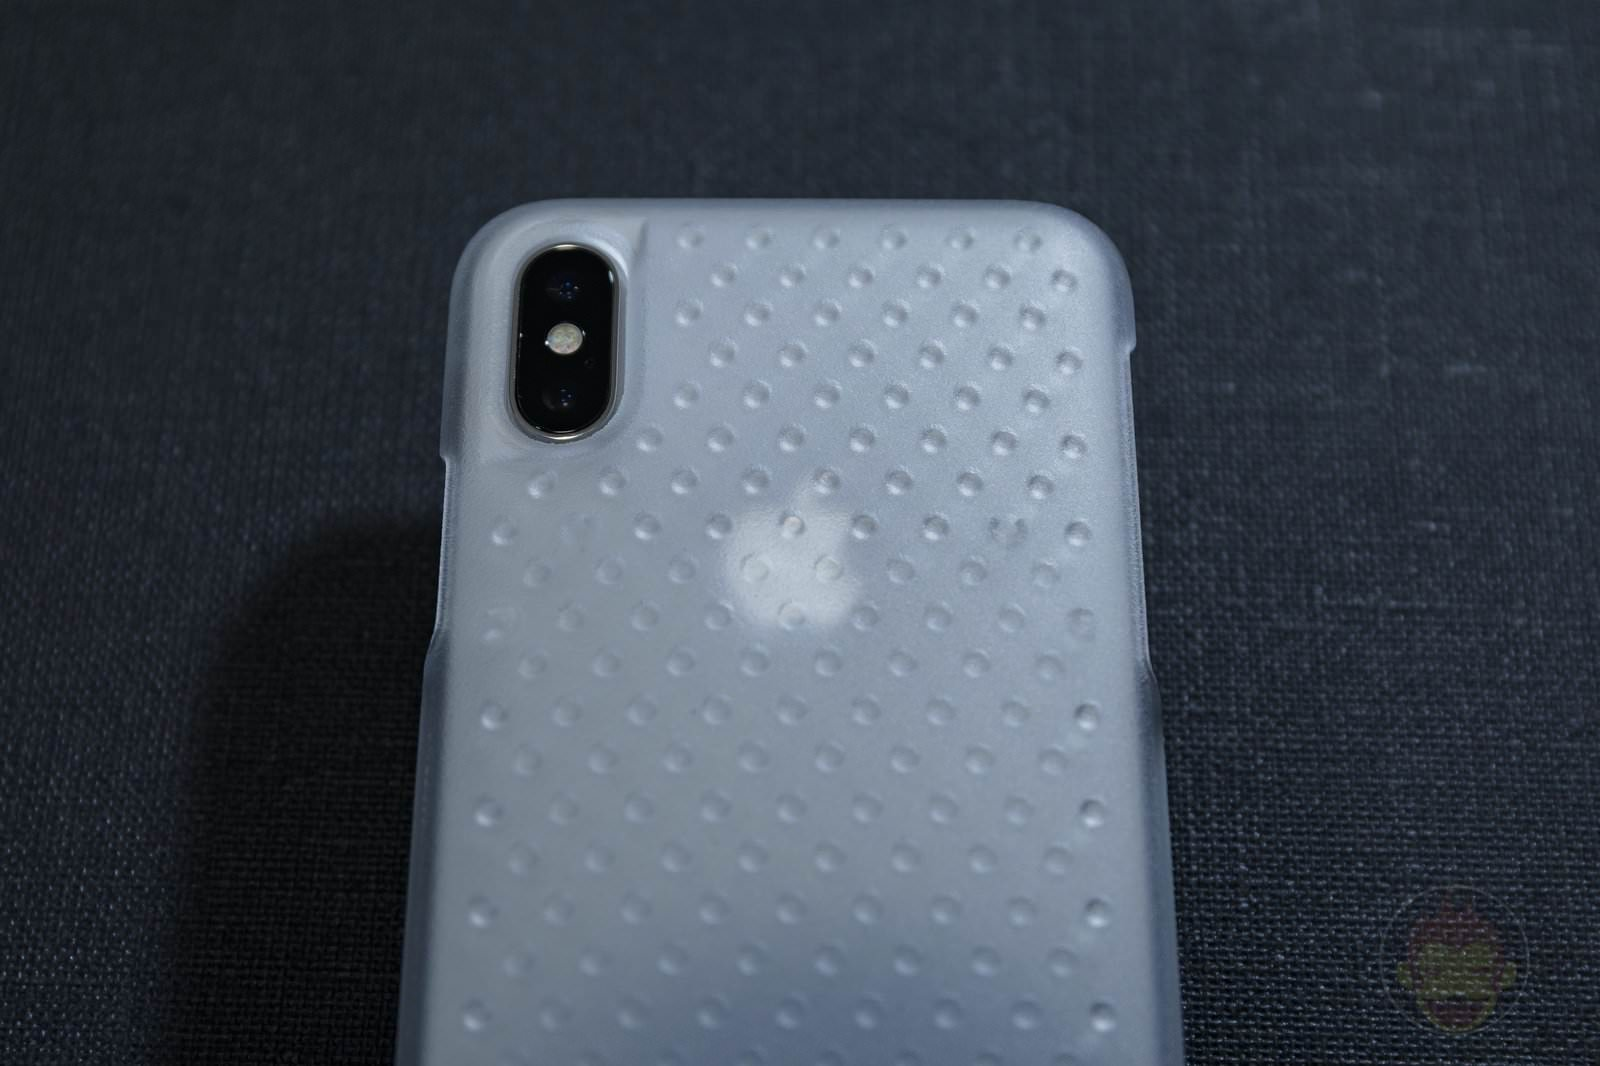 AndMesh-Haptic-Case-for-iPhone-03.jpg